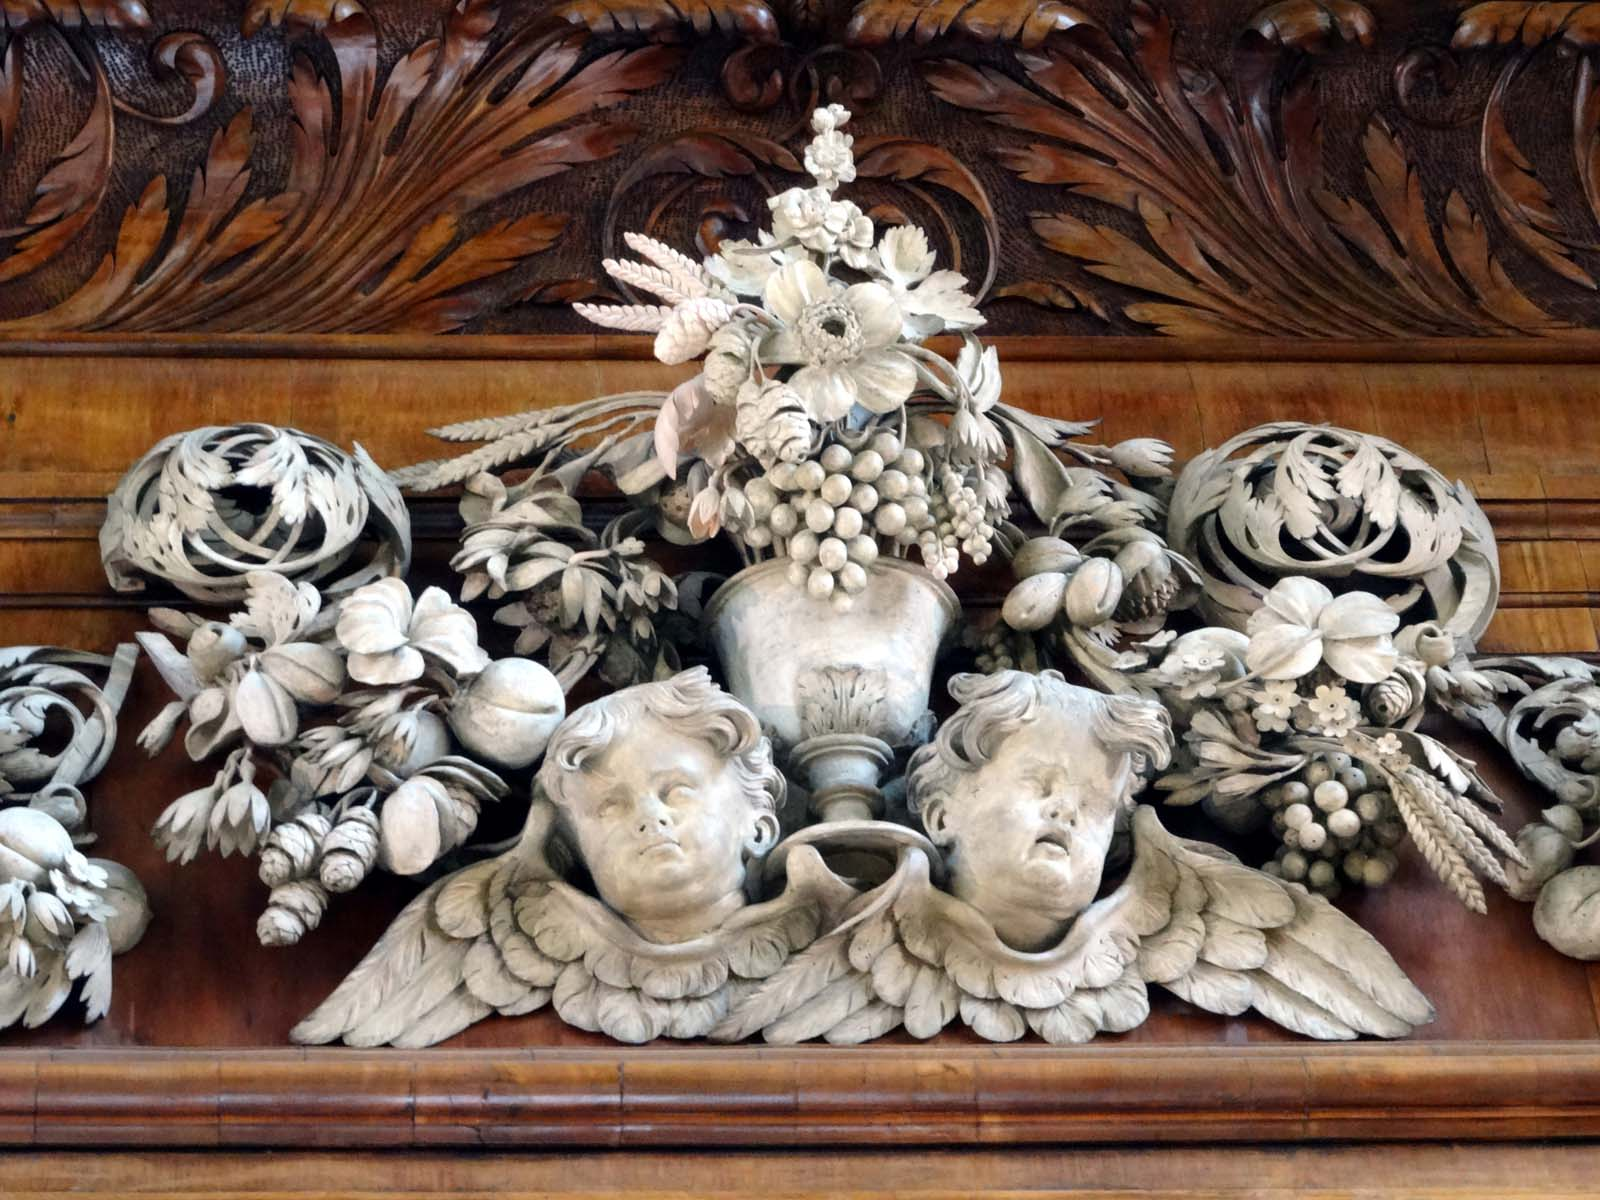 carved wooden cherubs surrounded by fruit and foliage